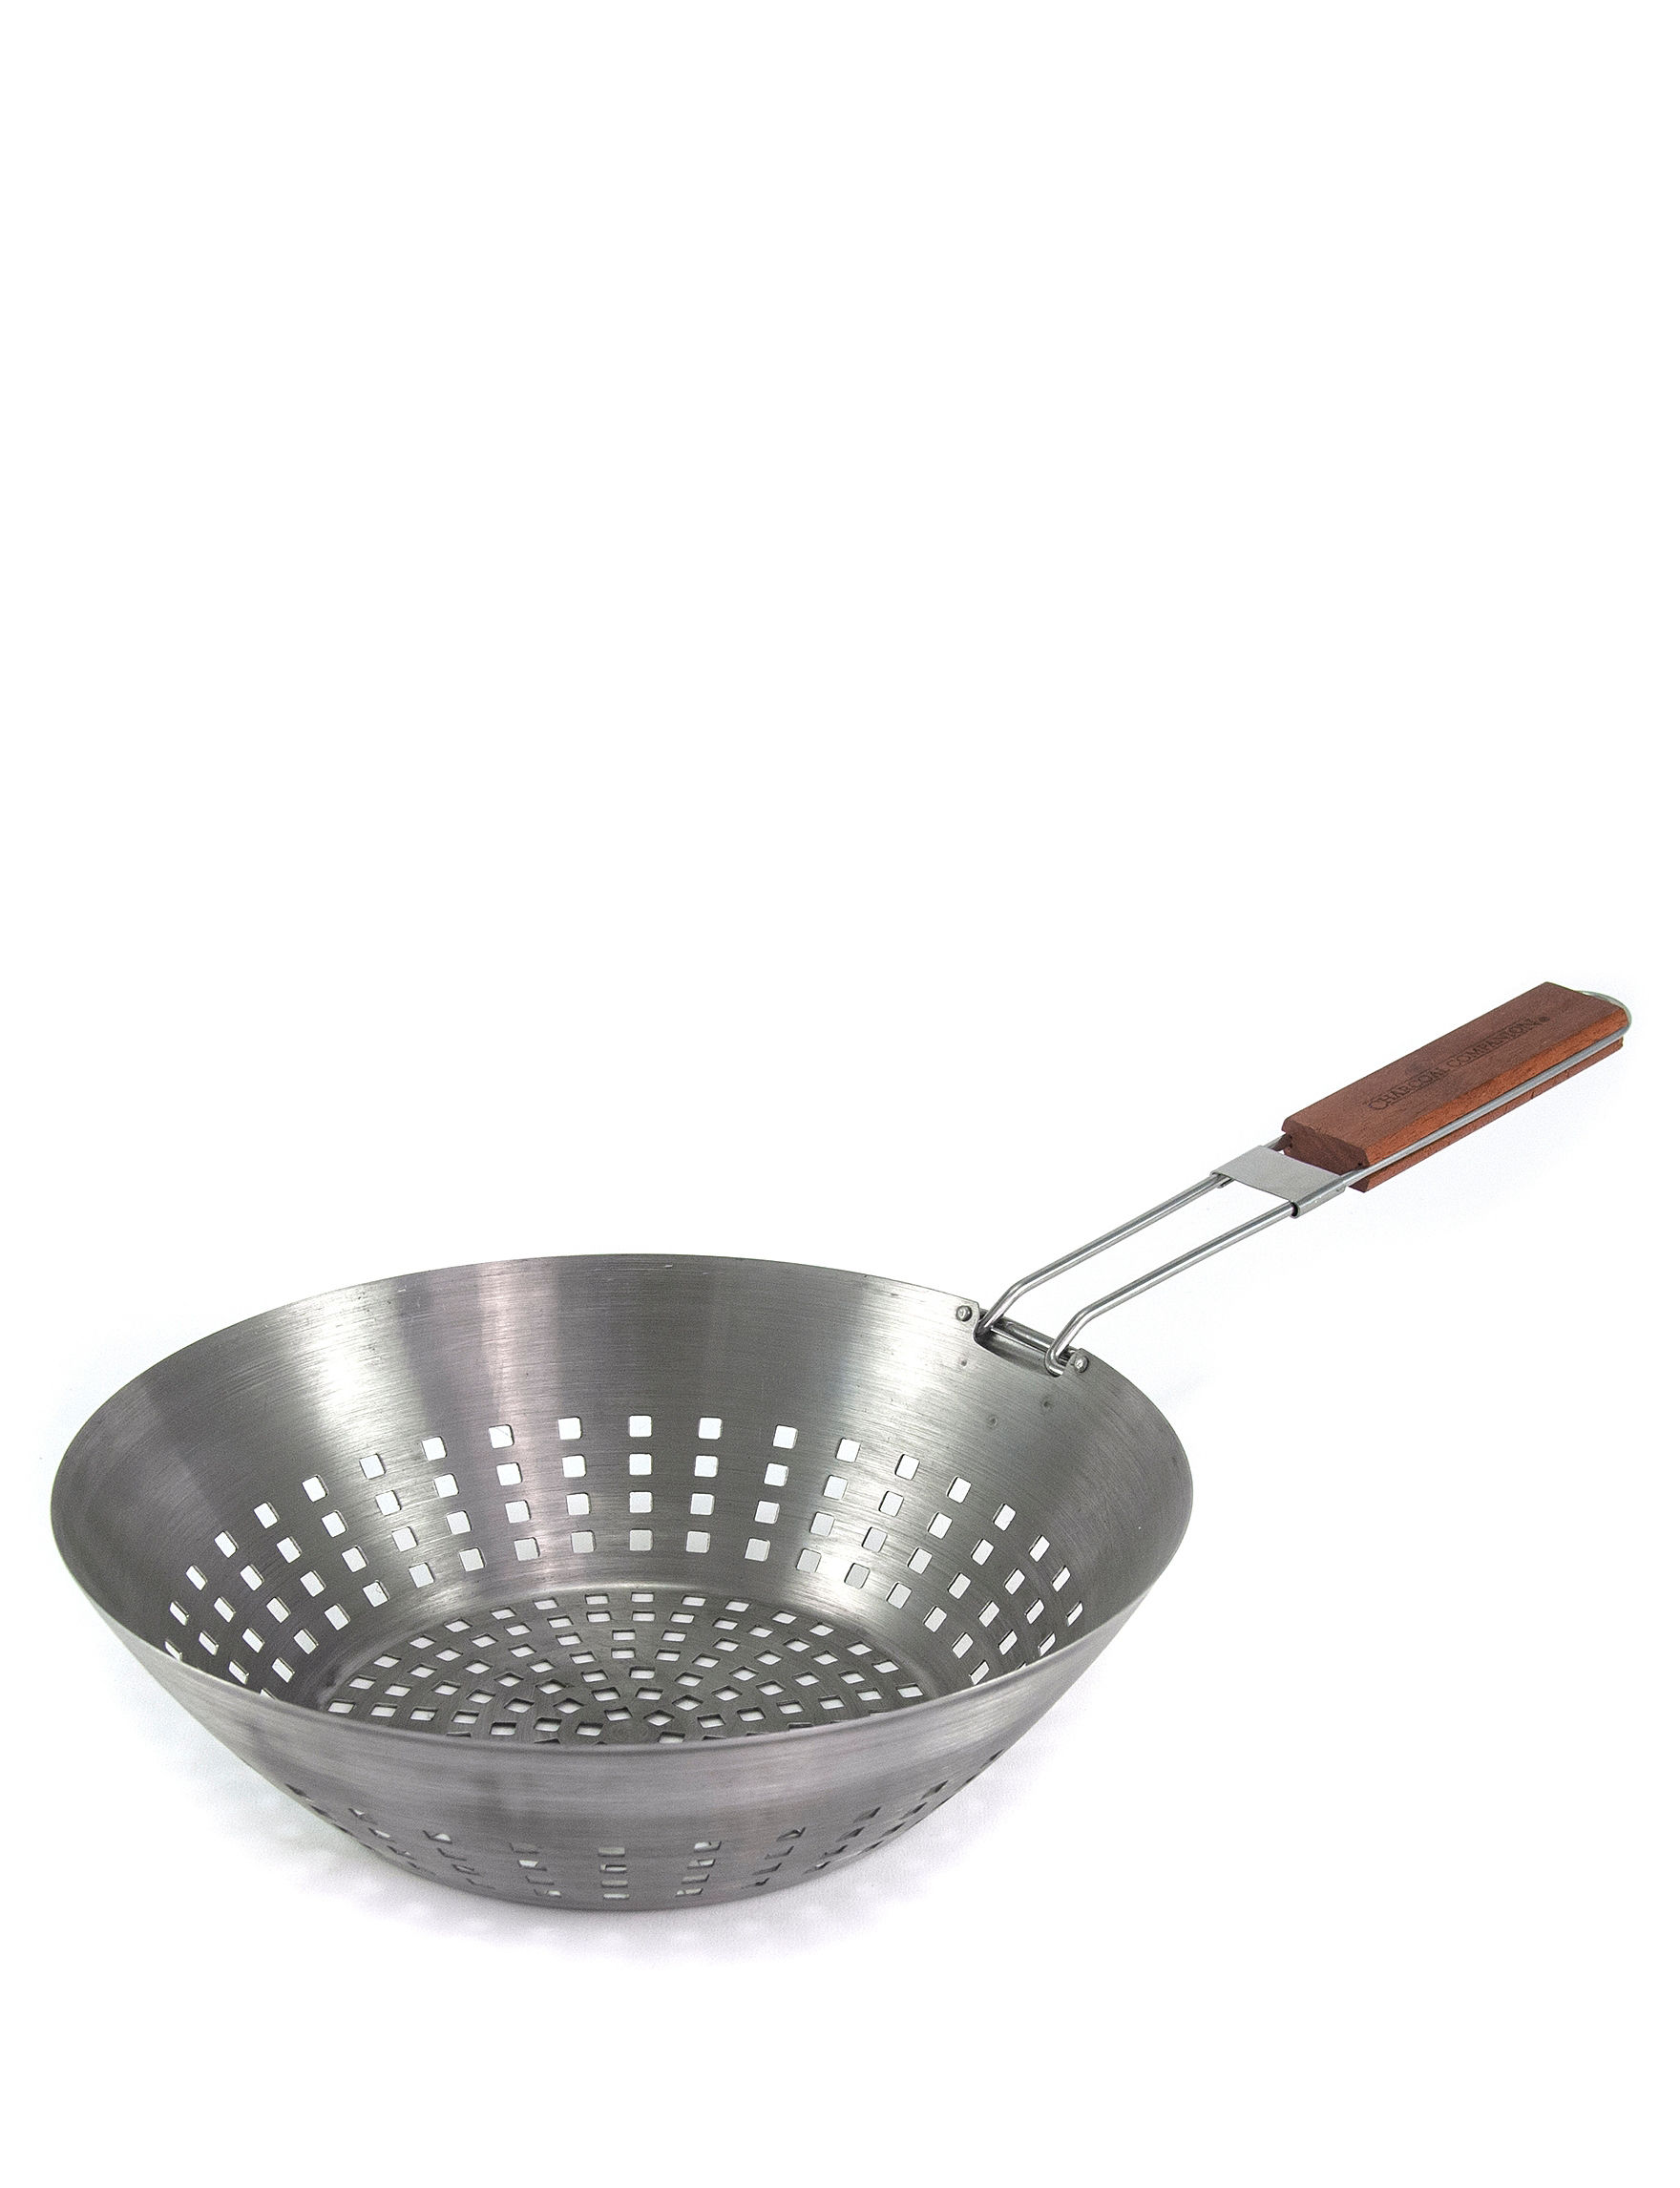 Charcoal Companion Natural Frying Pans & Skillets Cookware